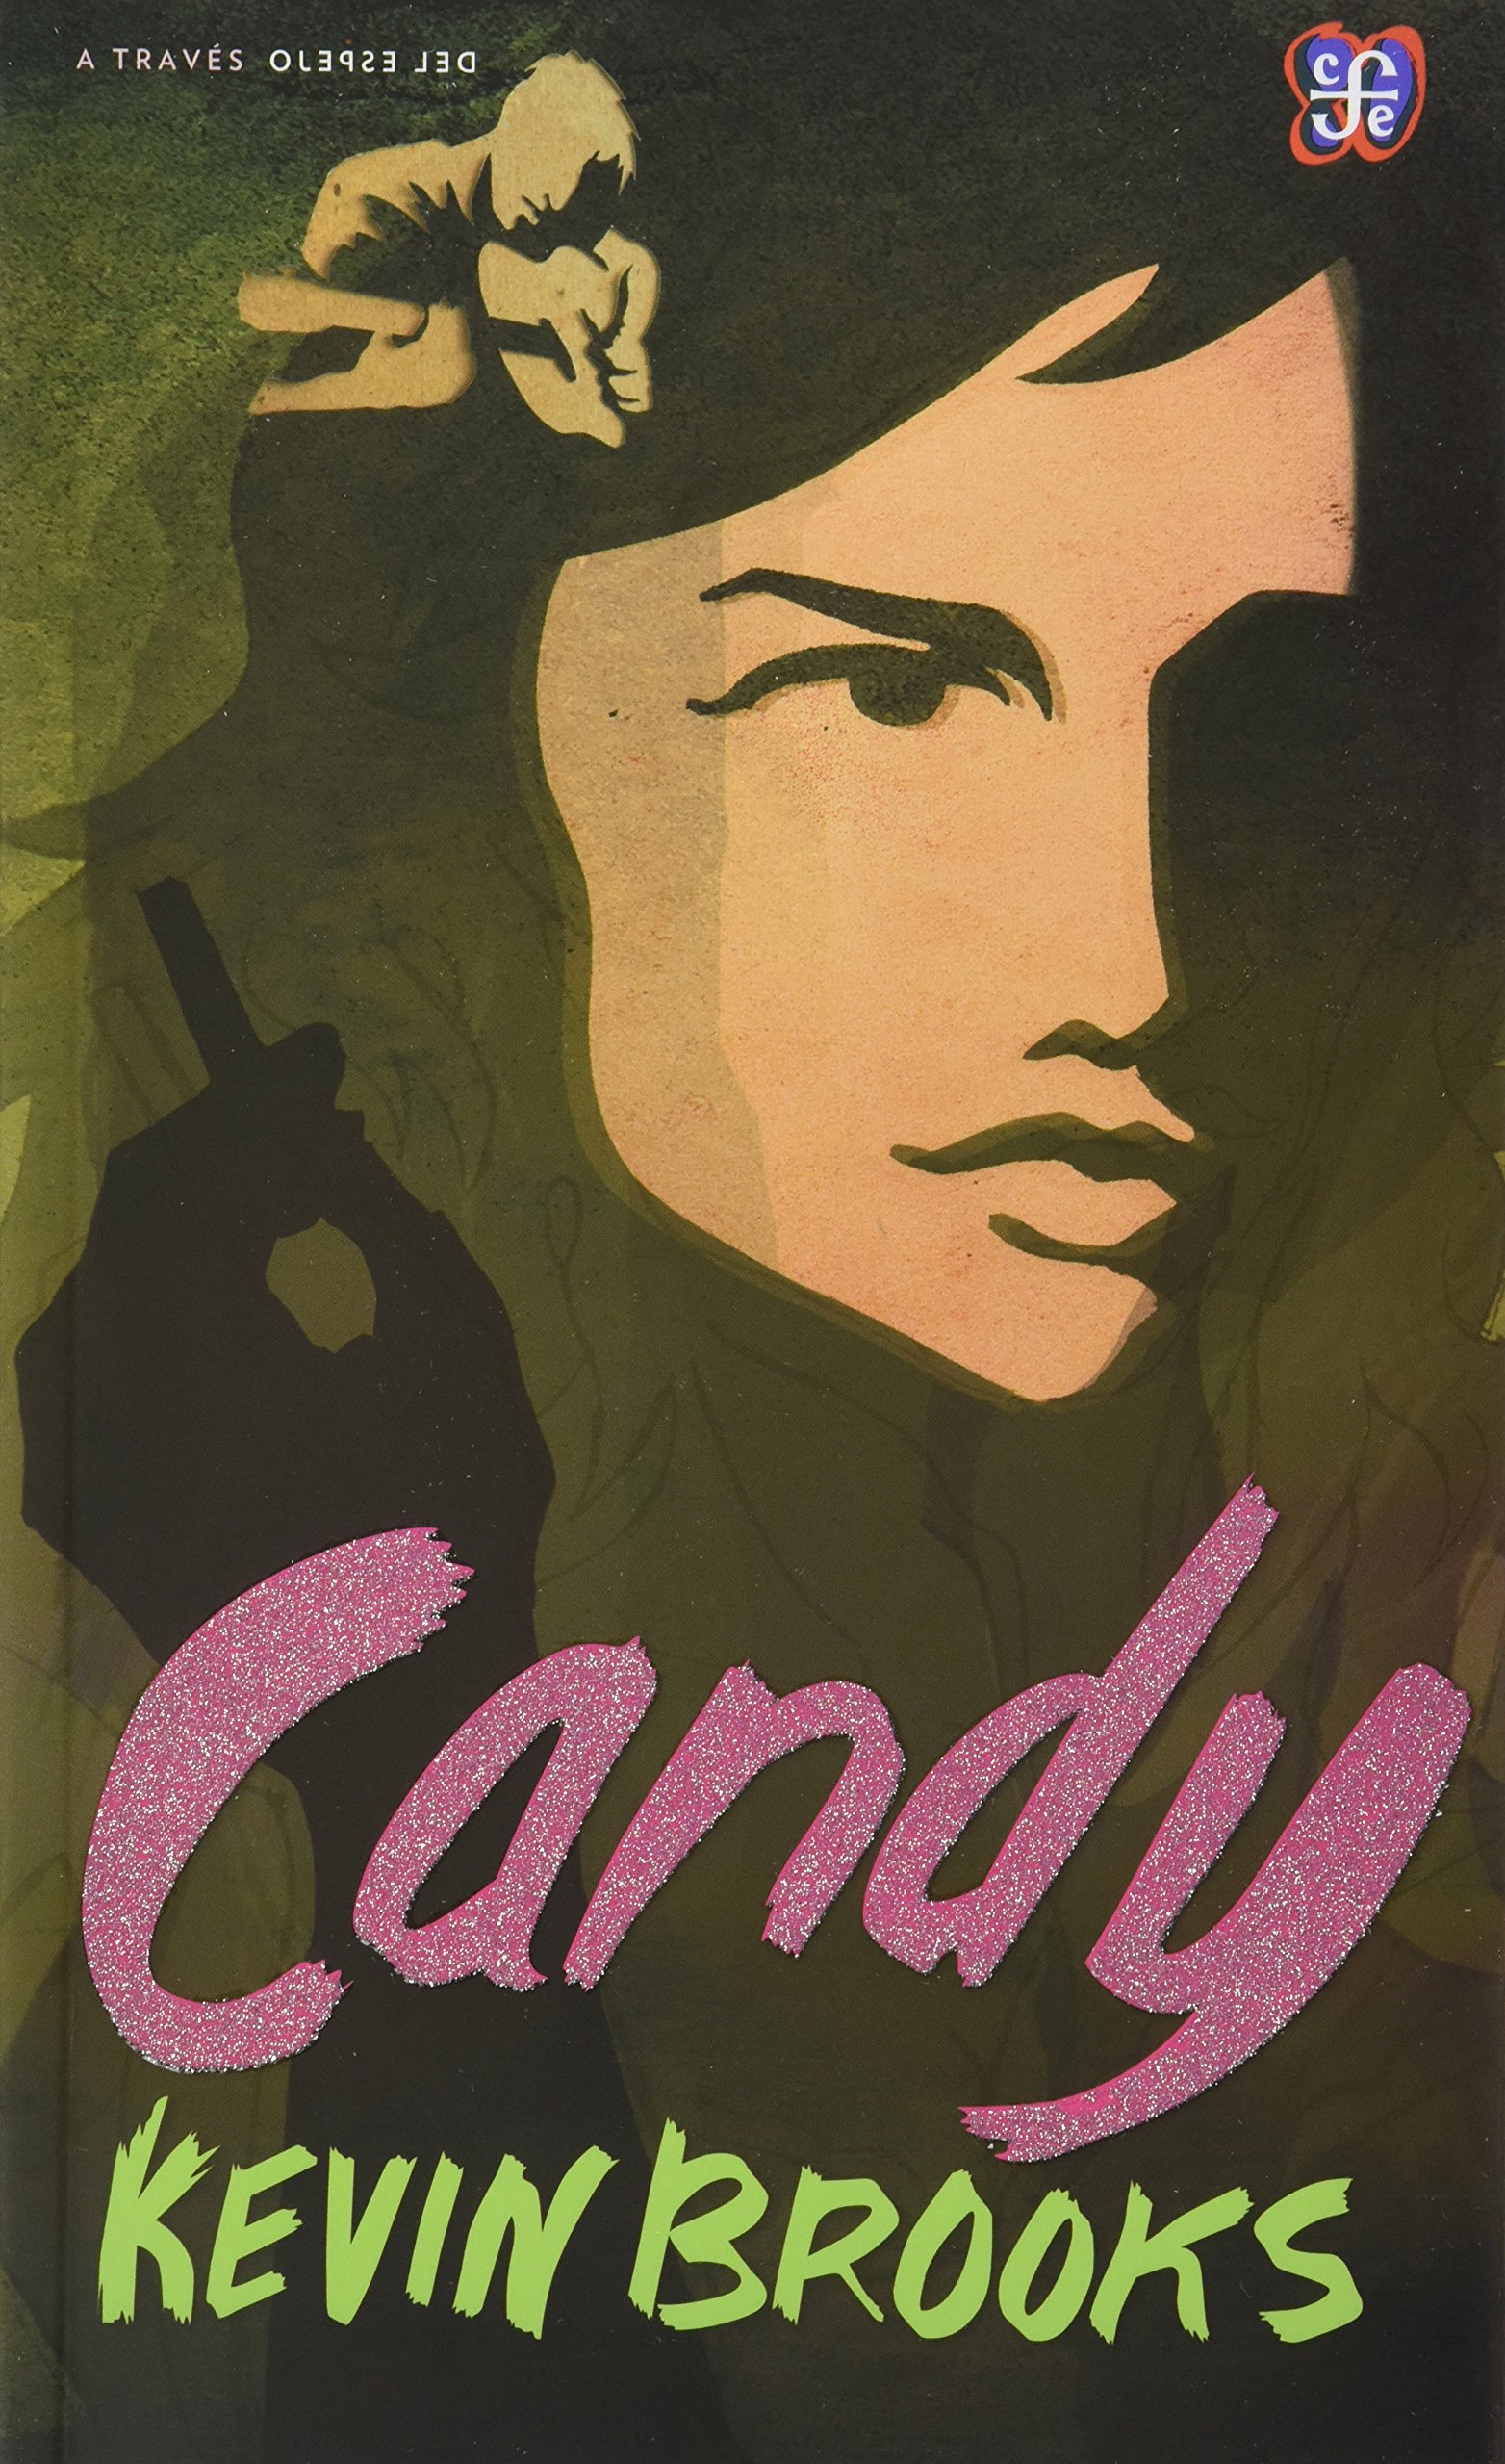 Candy (Traves del Espejo) (Spanish Edition) (Spanish) Paperback – August 12, 2010